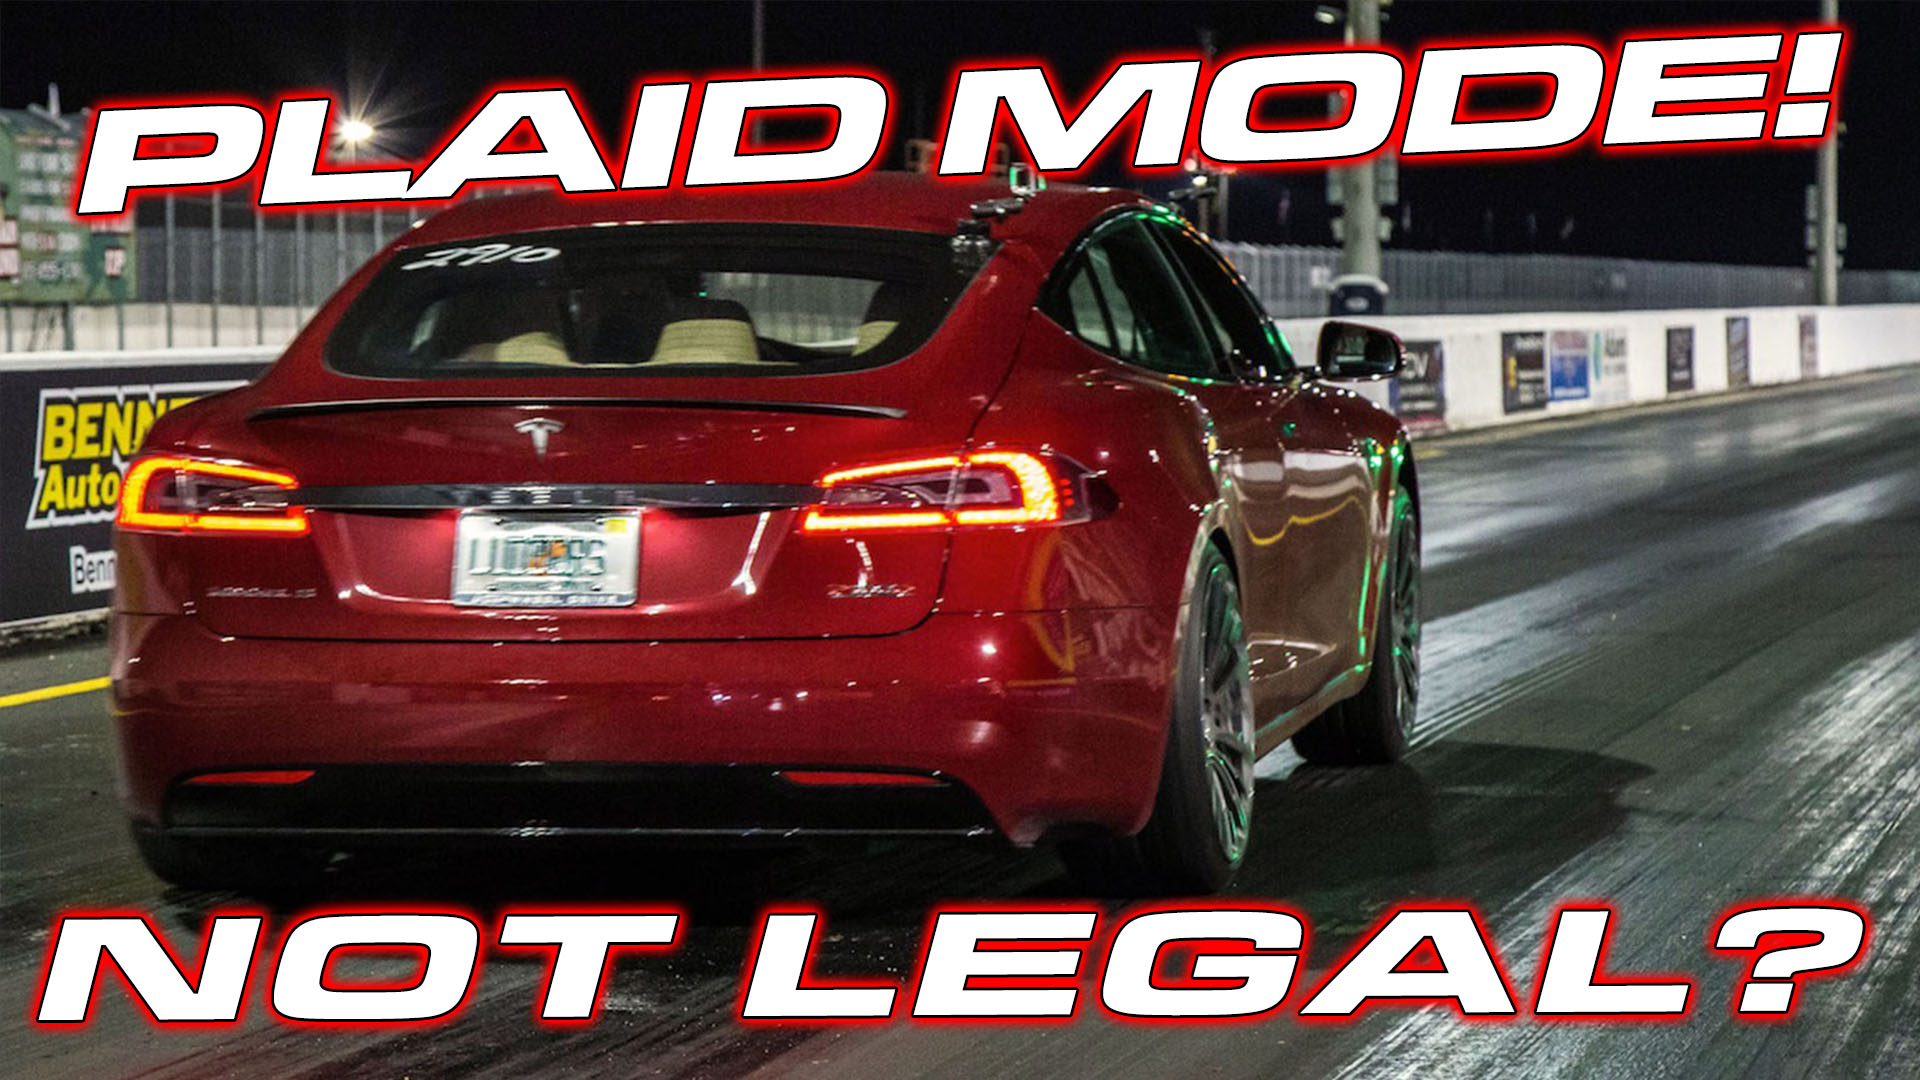 1,100 HP MODEL S PLAID MODE * But can you actually race it?